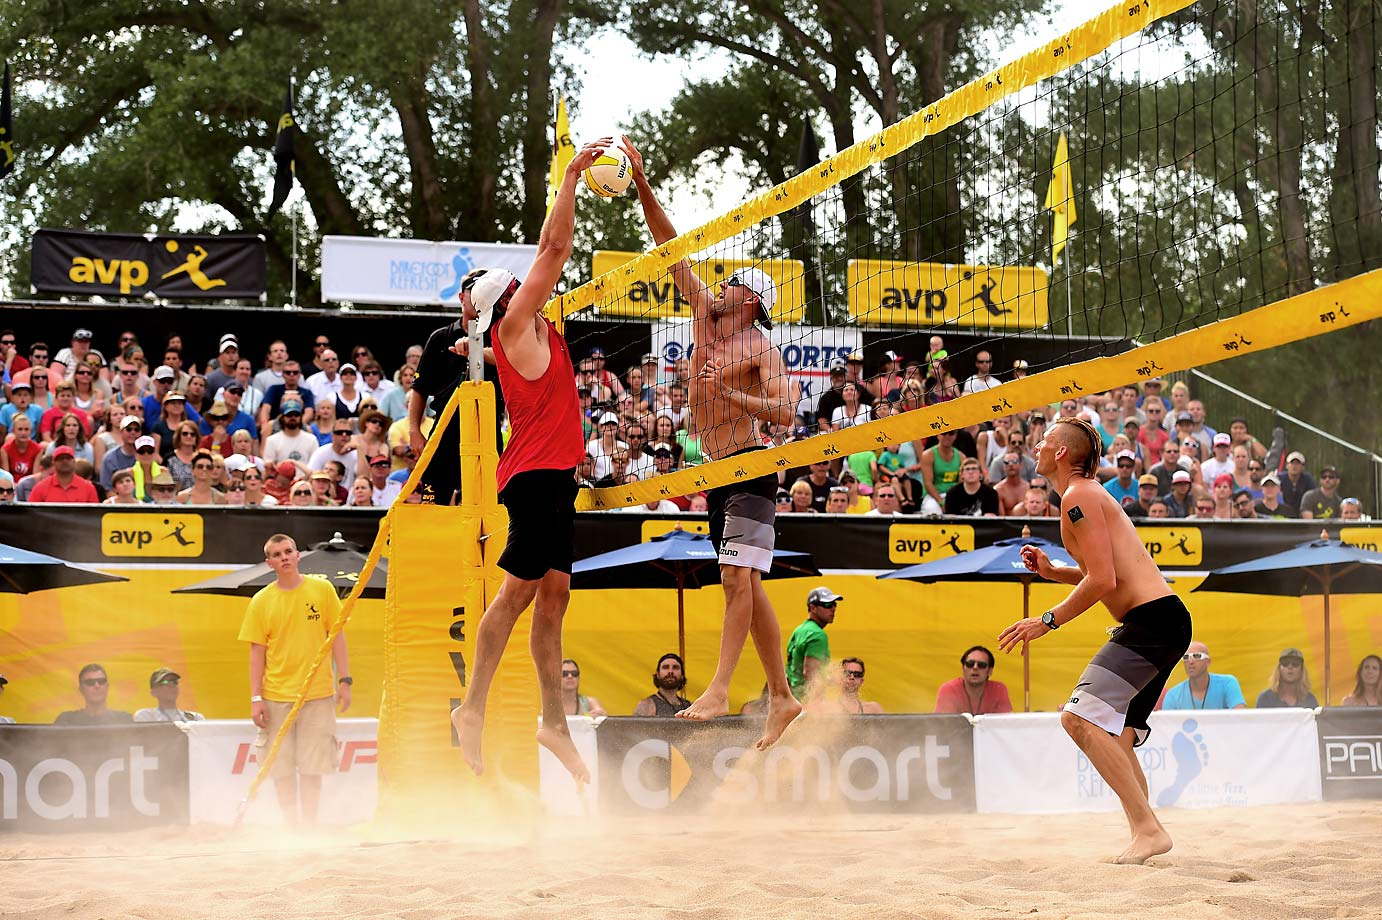 Big Brad Keenan pounds one past Casey Patterson. Keenan/John Mayer lost the quarterfinal match 21-18 and 28-26 to Patterson/Jake Gibb.                           Beach Volleyball: AVP Salt Lake City Open Tournament.